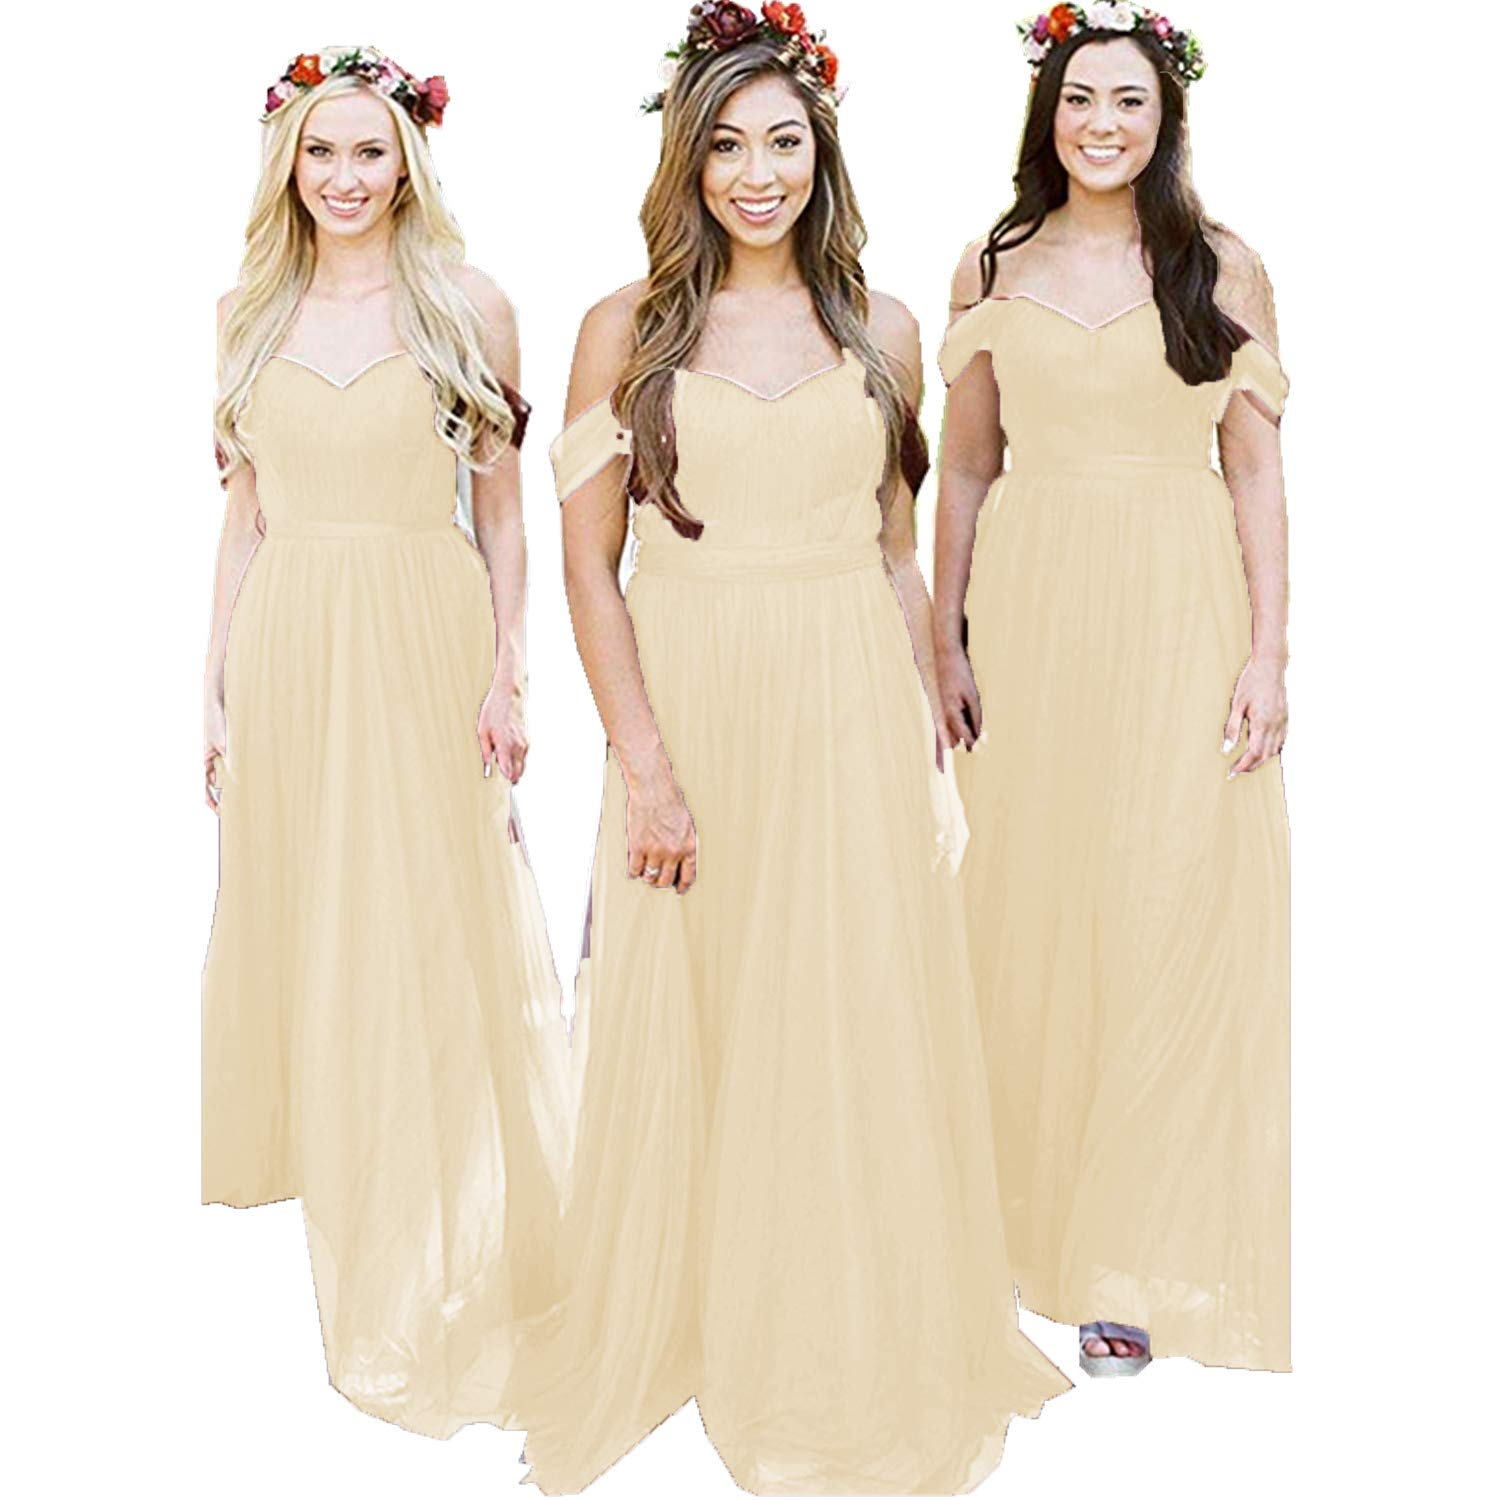 Champagne Ruiyuhong Women's Off The Shoulder Bridesmaid Dresses Long Tulle Wedding Party Gown